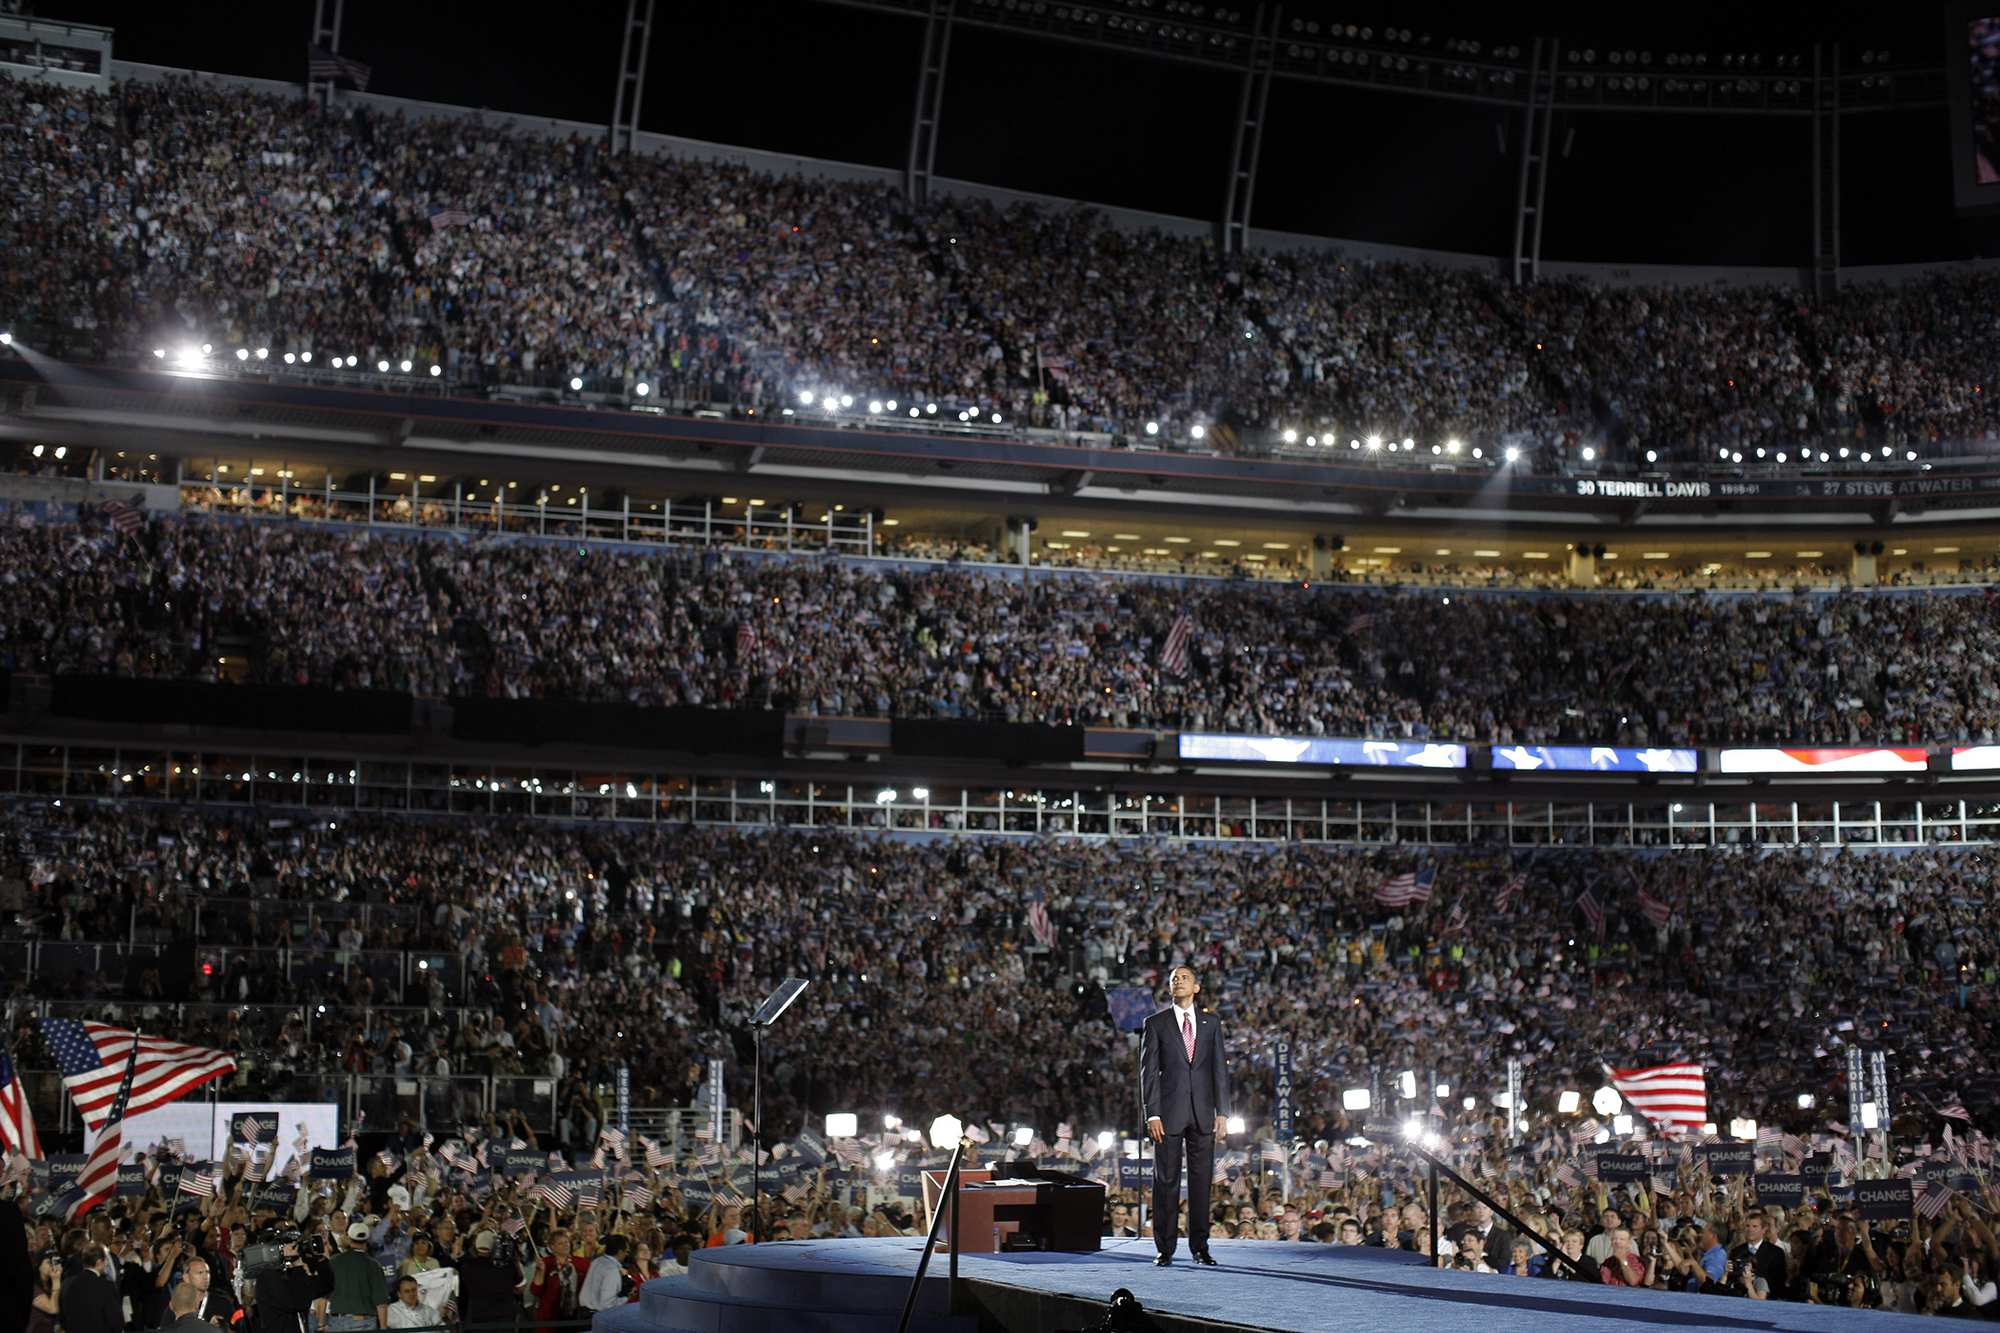 Democratic U.S. Presidential nominee Sen. Barack Obama on day four of the Democratic National Convention in 2008 in Denver. | <span>Charles Ommanney/Getty Images</span>